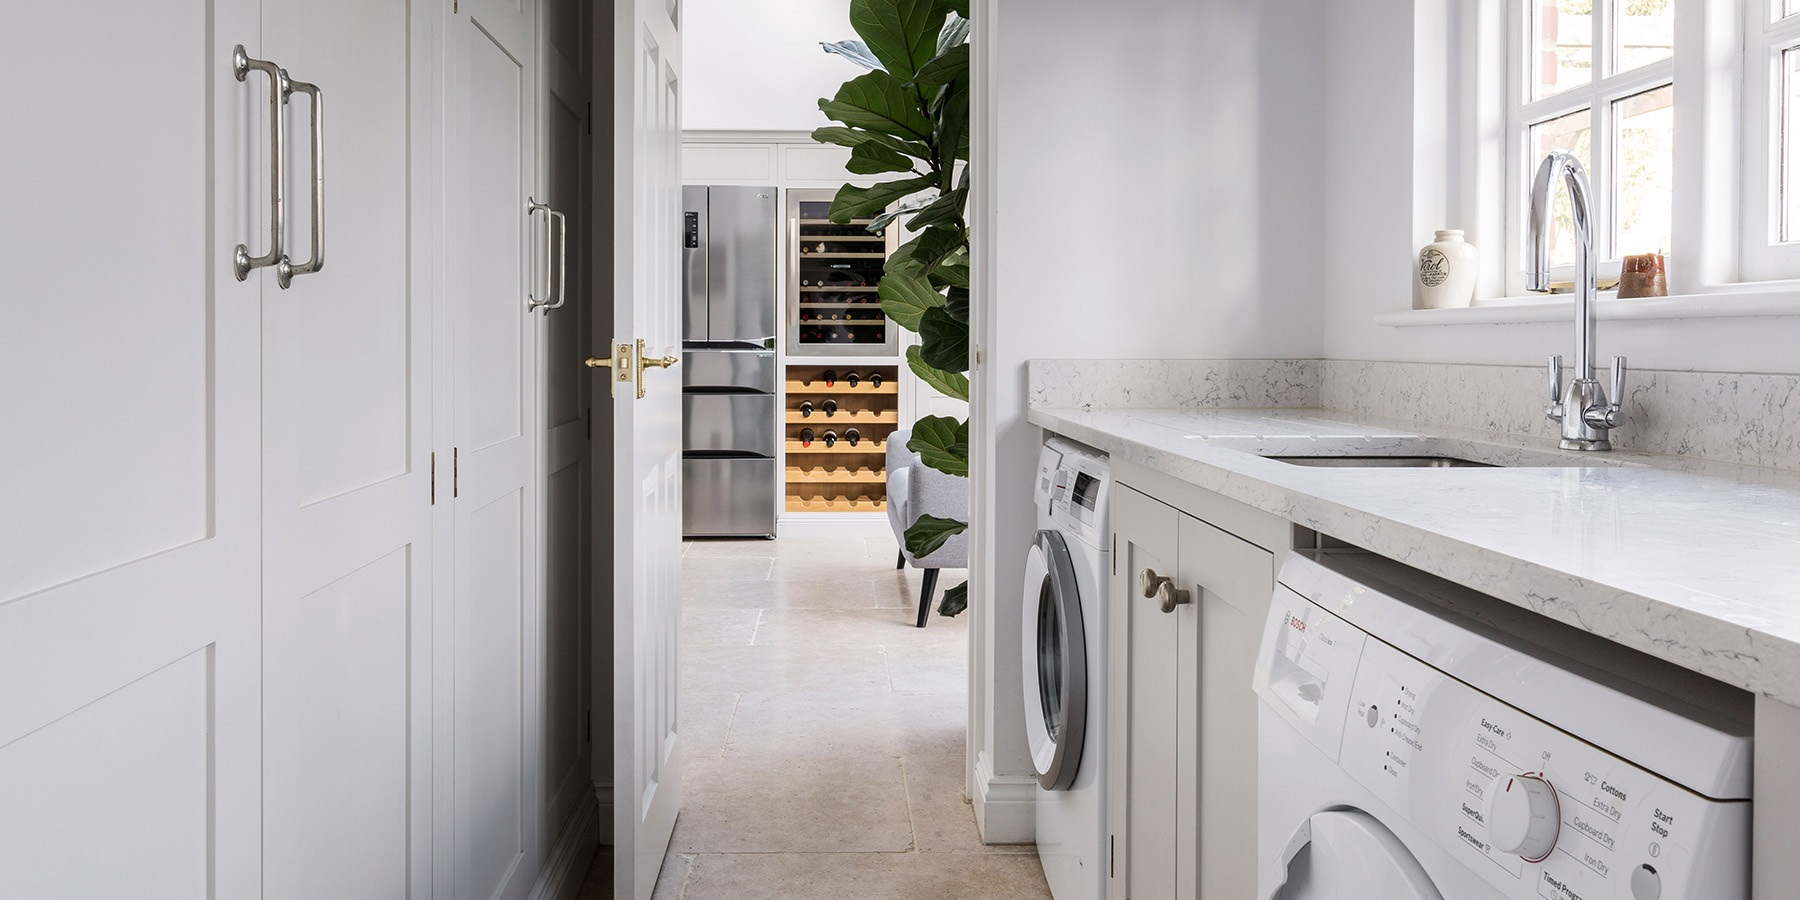 Bespoke, handmade utility room and storage solutions - Handmade utility room furniture with bespoke storage solutions.